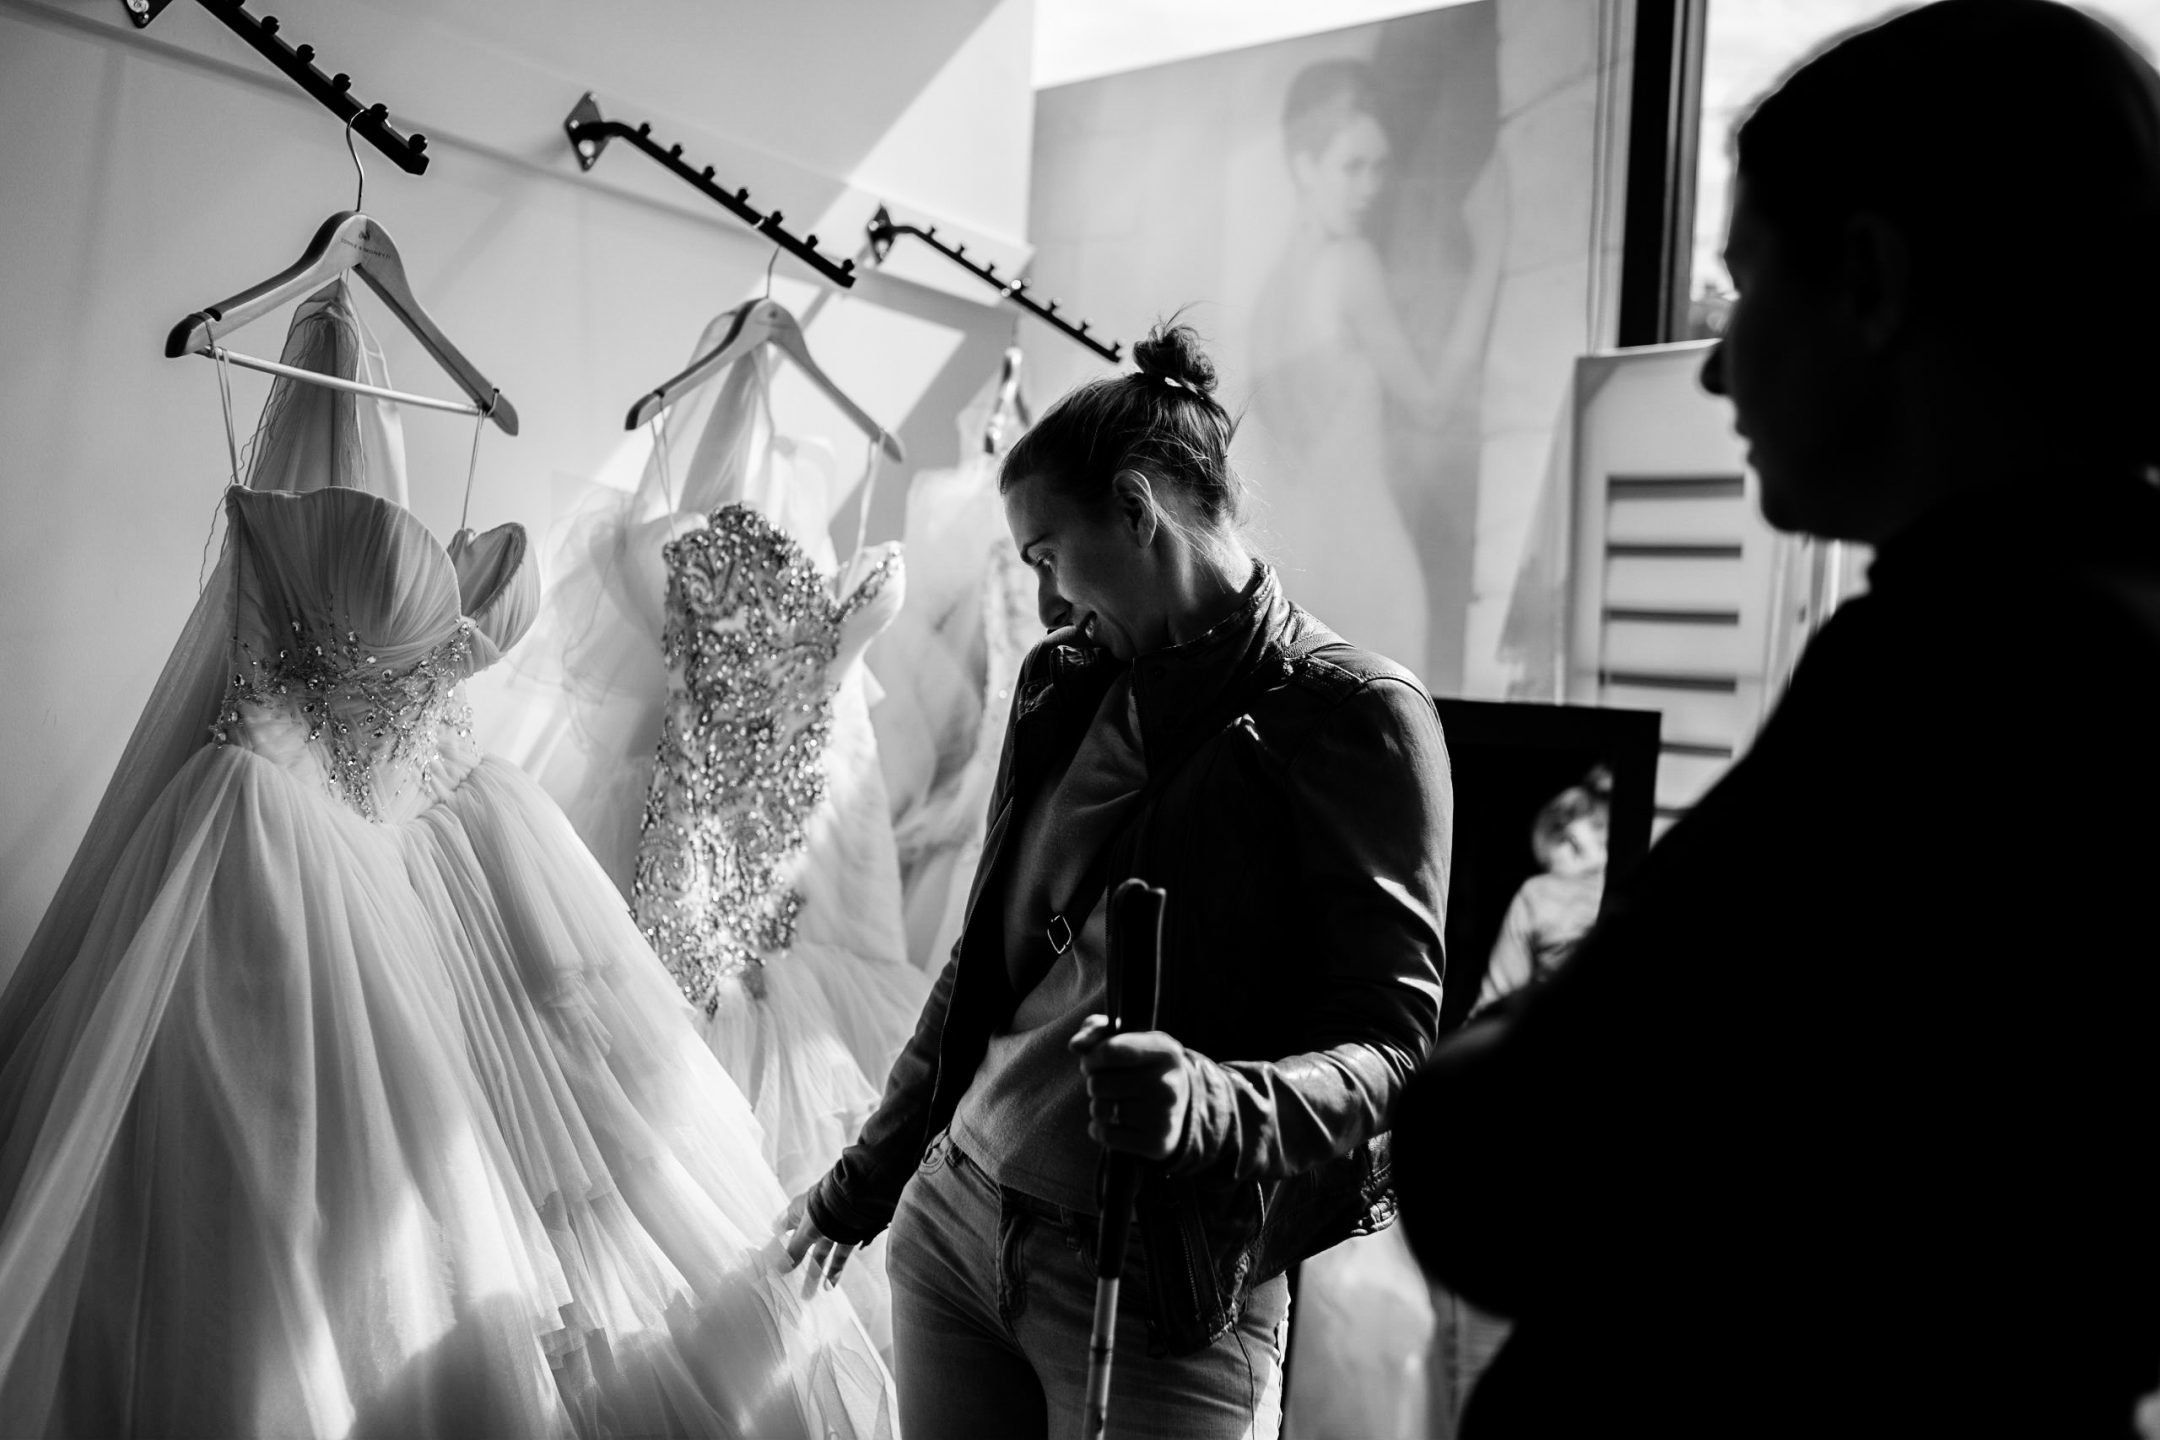 Steph Agnew touches a wedding gown that's been brought out for her to examine while her friend and bridesmaidJess,...